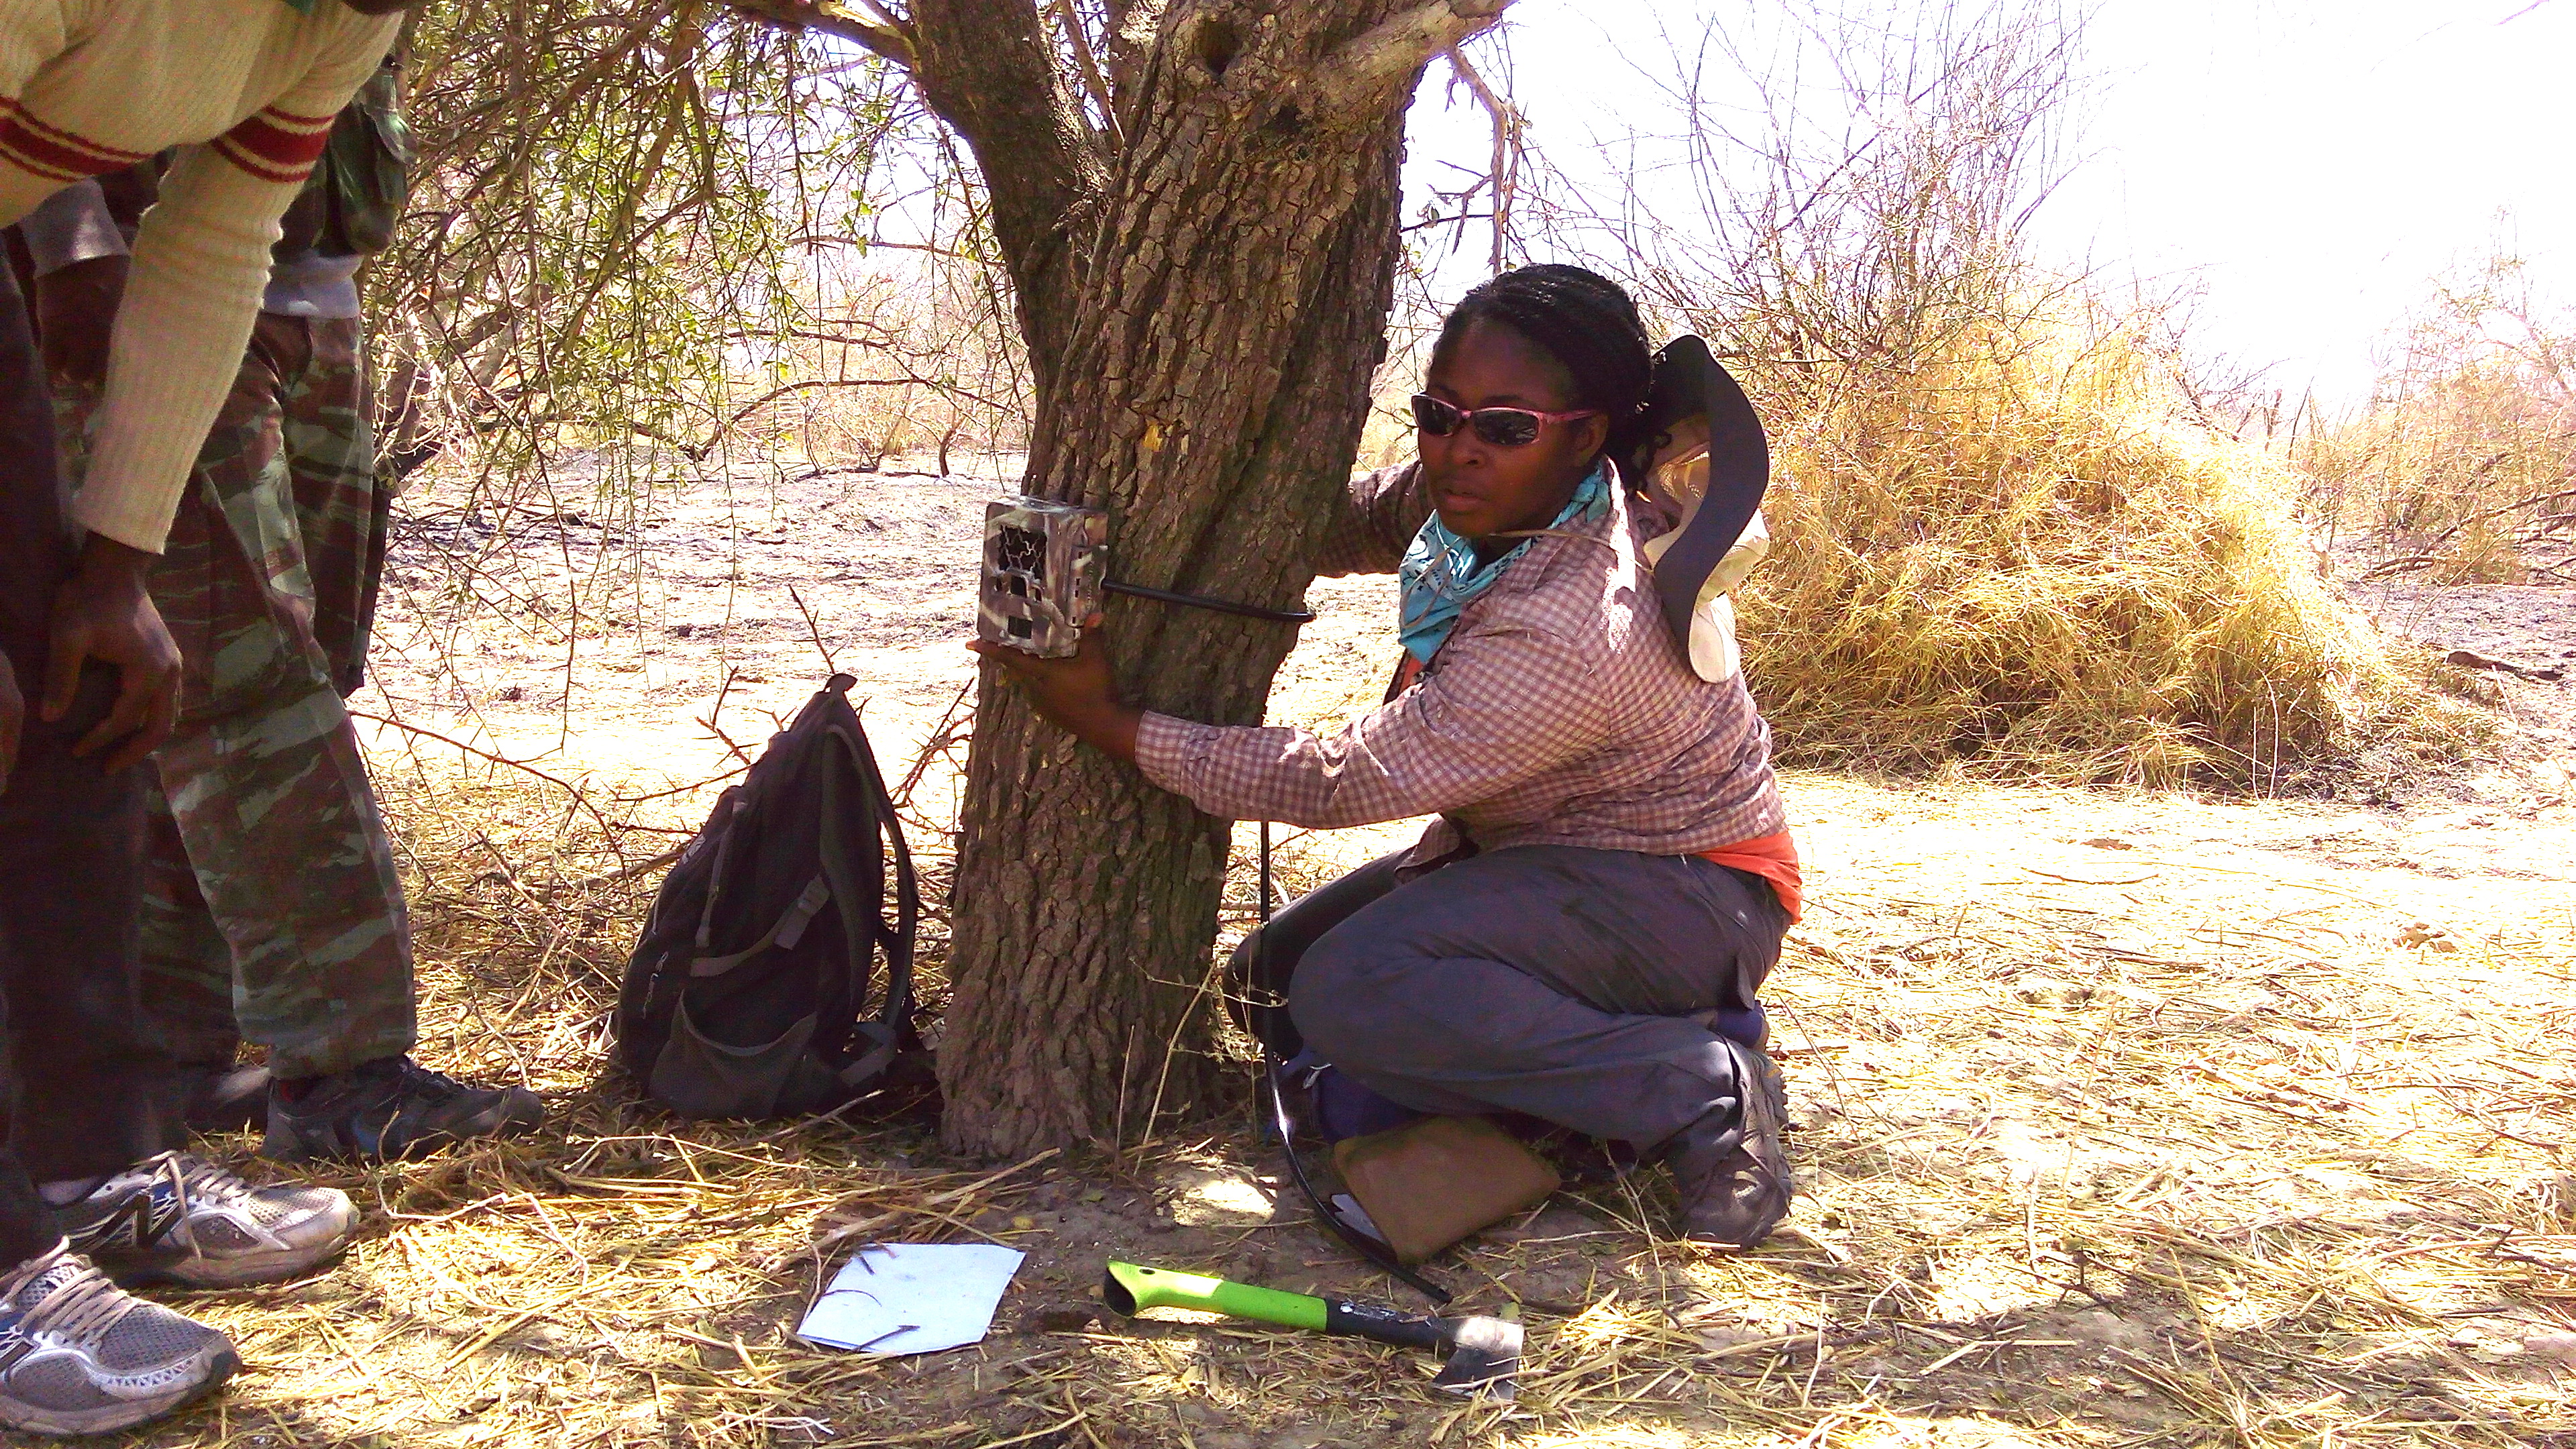 University of Michigan wildlife ecologist Nyeema Harris and her crew attach a digital camera to a tree for a study of human pressures on wildlife within the largest protected area in West Africa. Image credit: University of Michigan Applied Wildlife Ecology Lab.